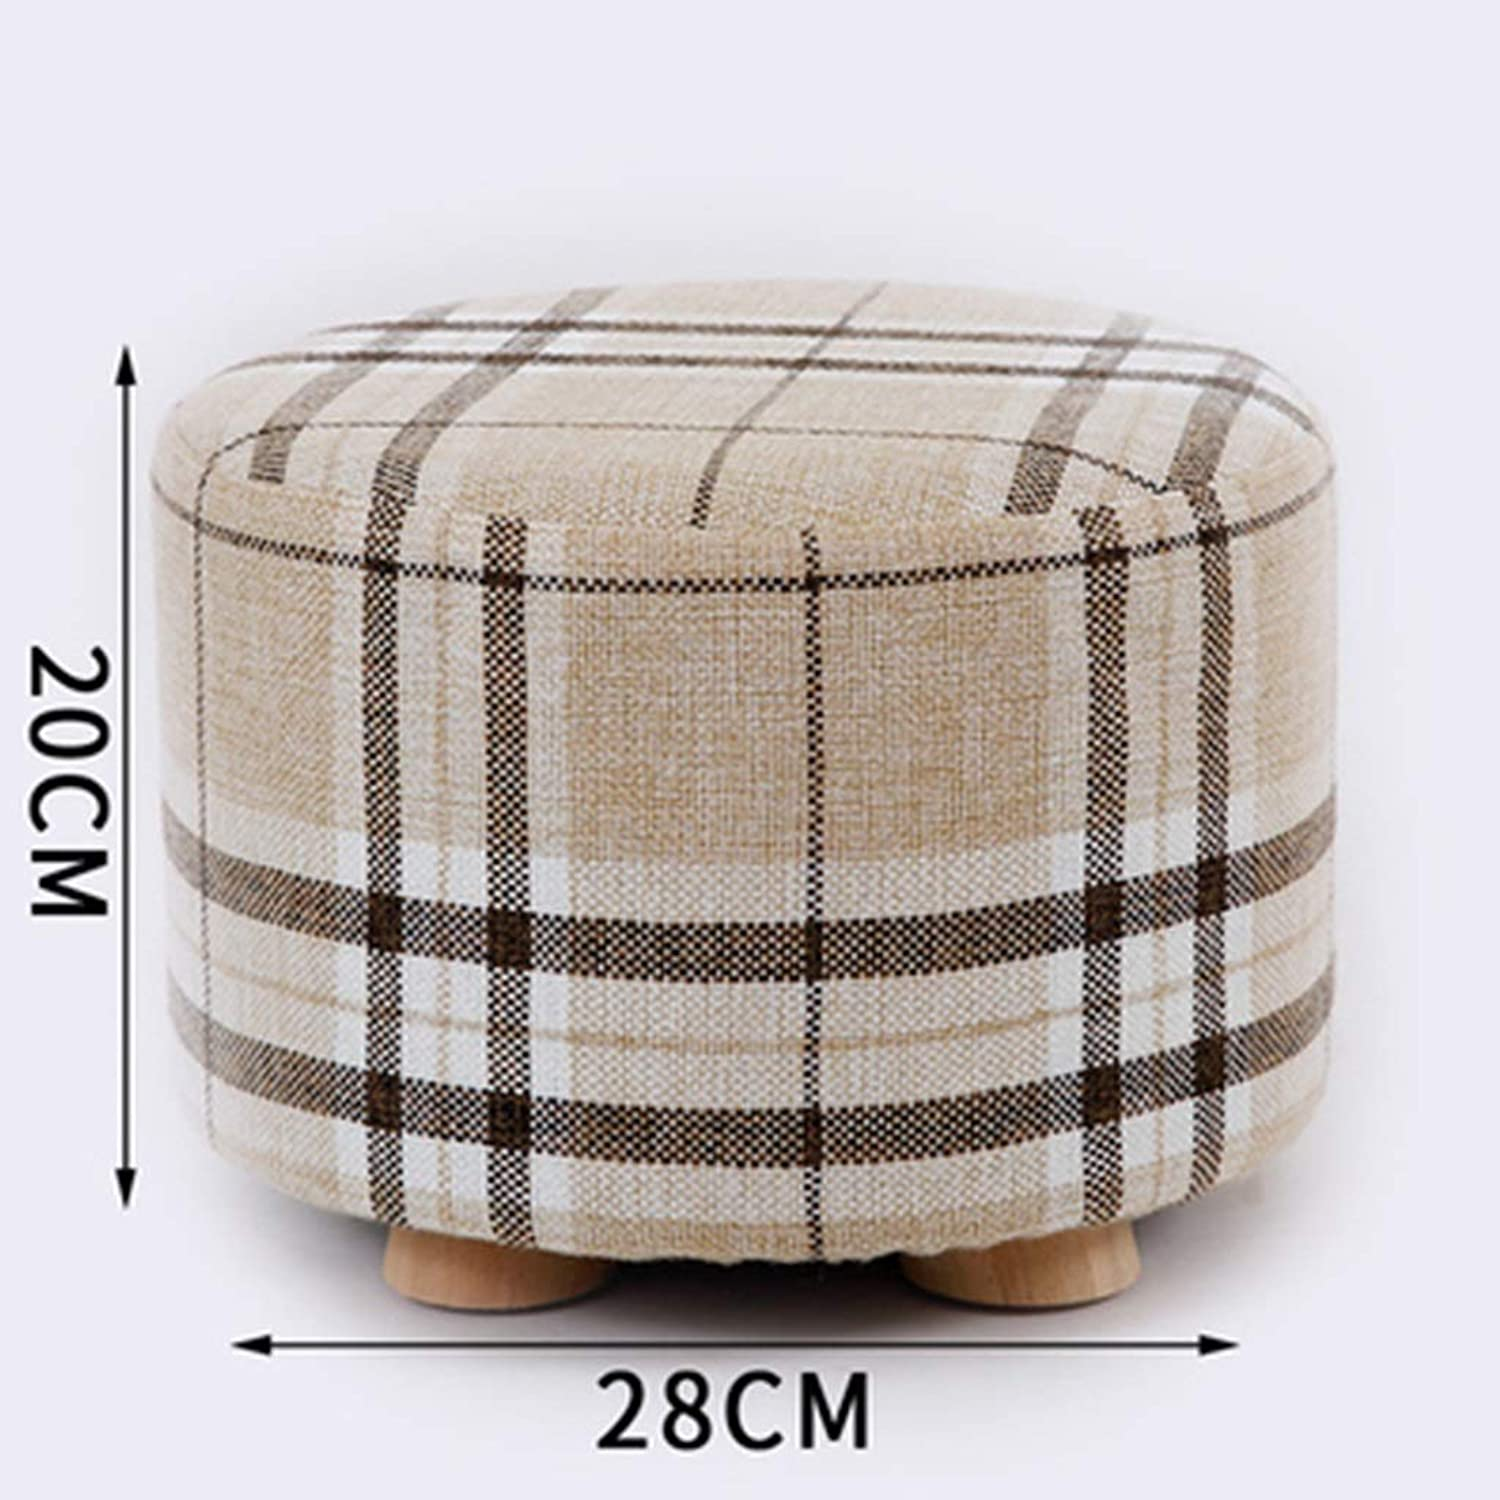 ZHBWJSH Solid Wood Stool Home Change shoes Stool Stool Fashion Creative Living Room Small Bench Sofa Stool Bedroom Fabric Stool (color   E)